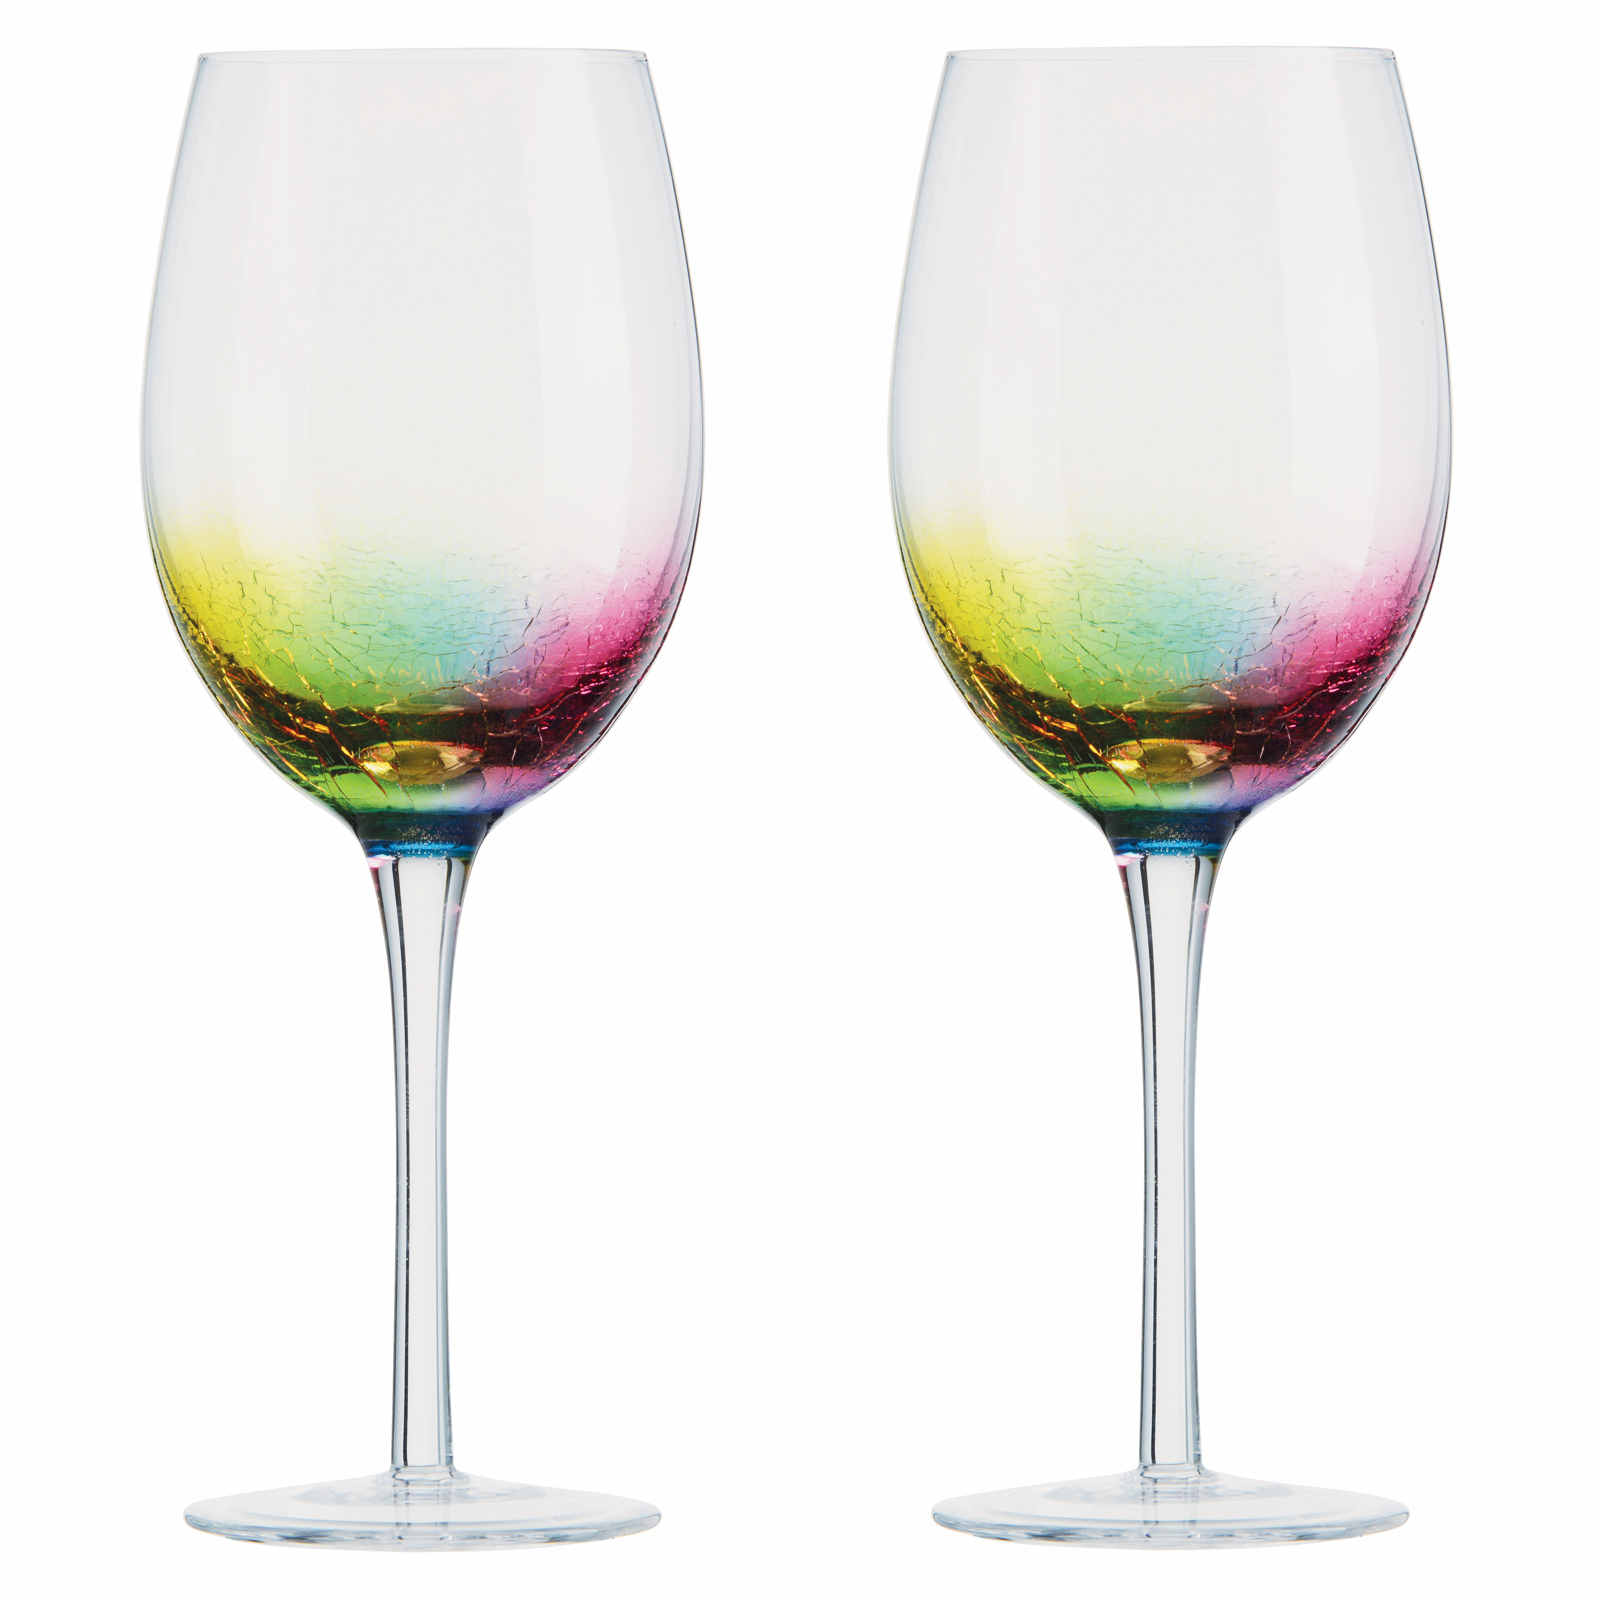 Neon Wine glasses